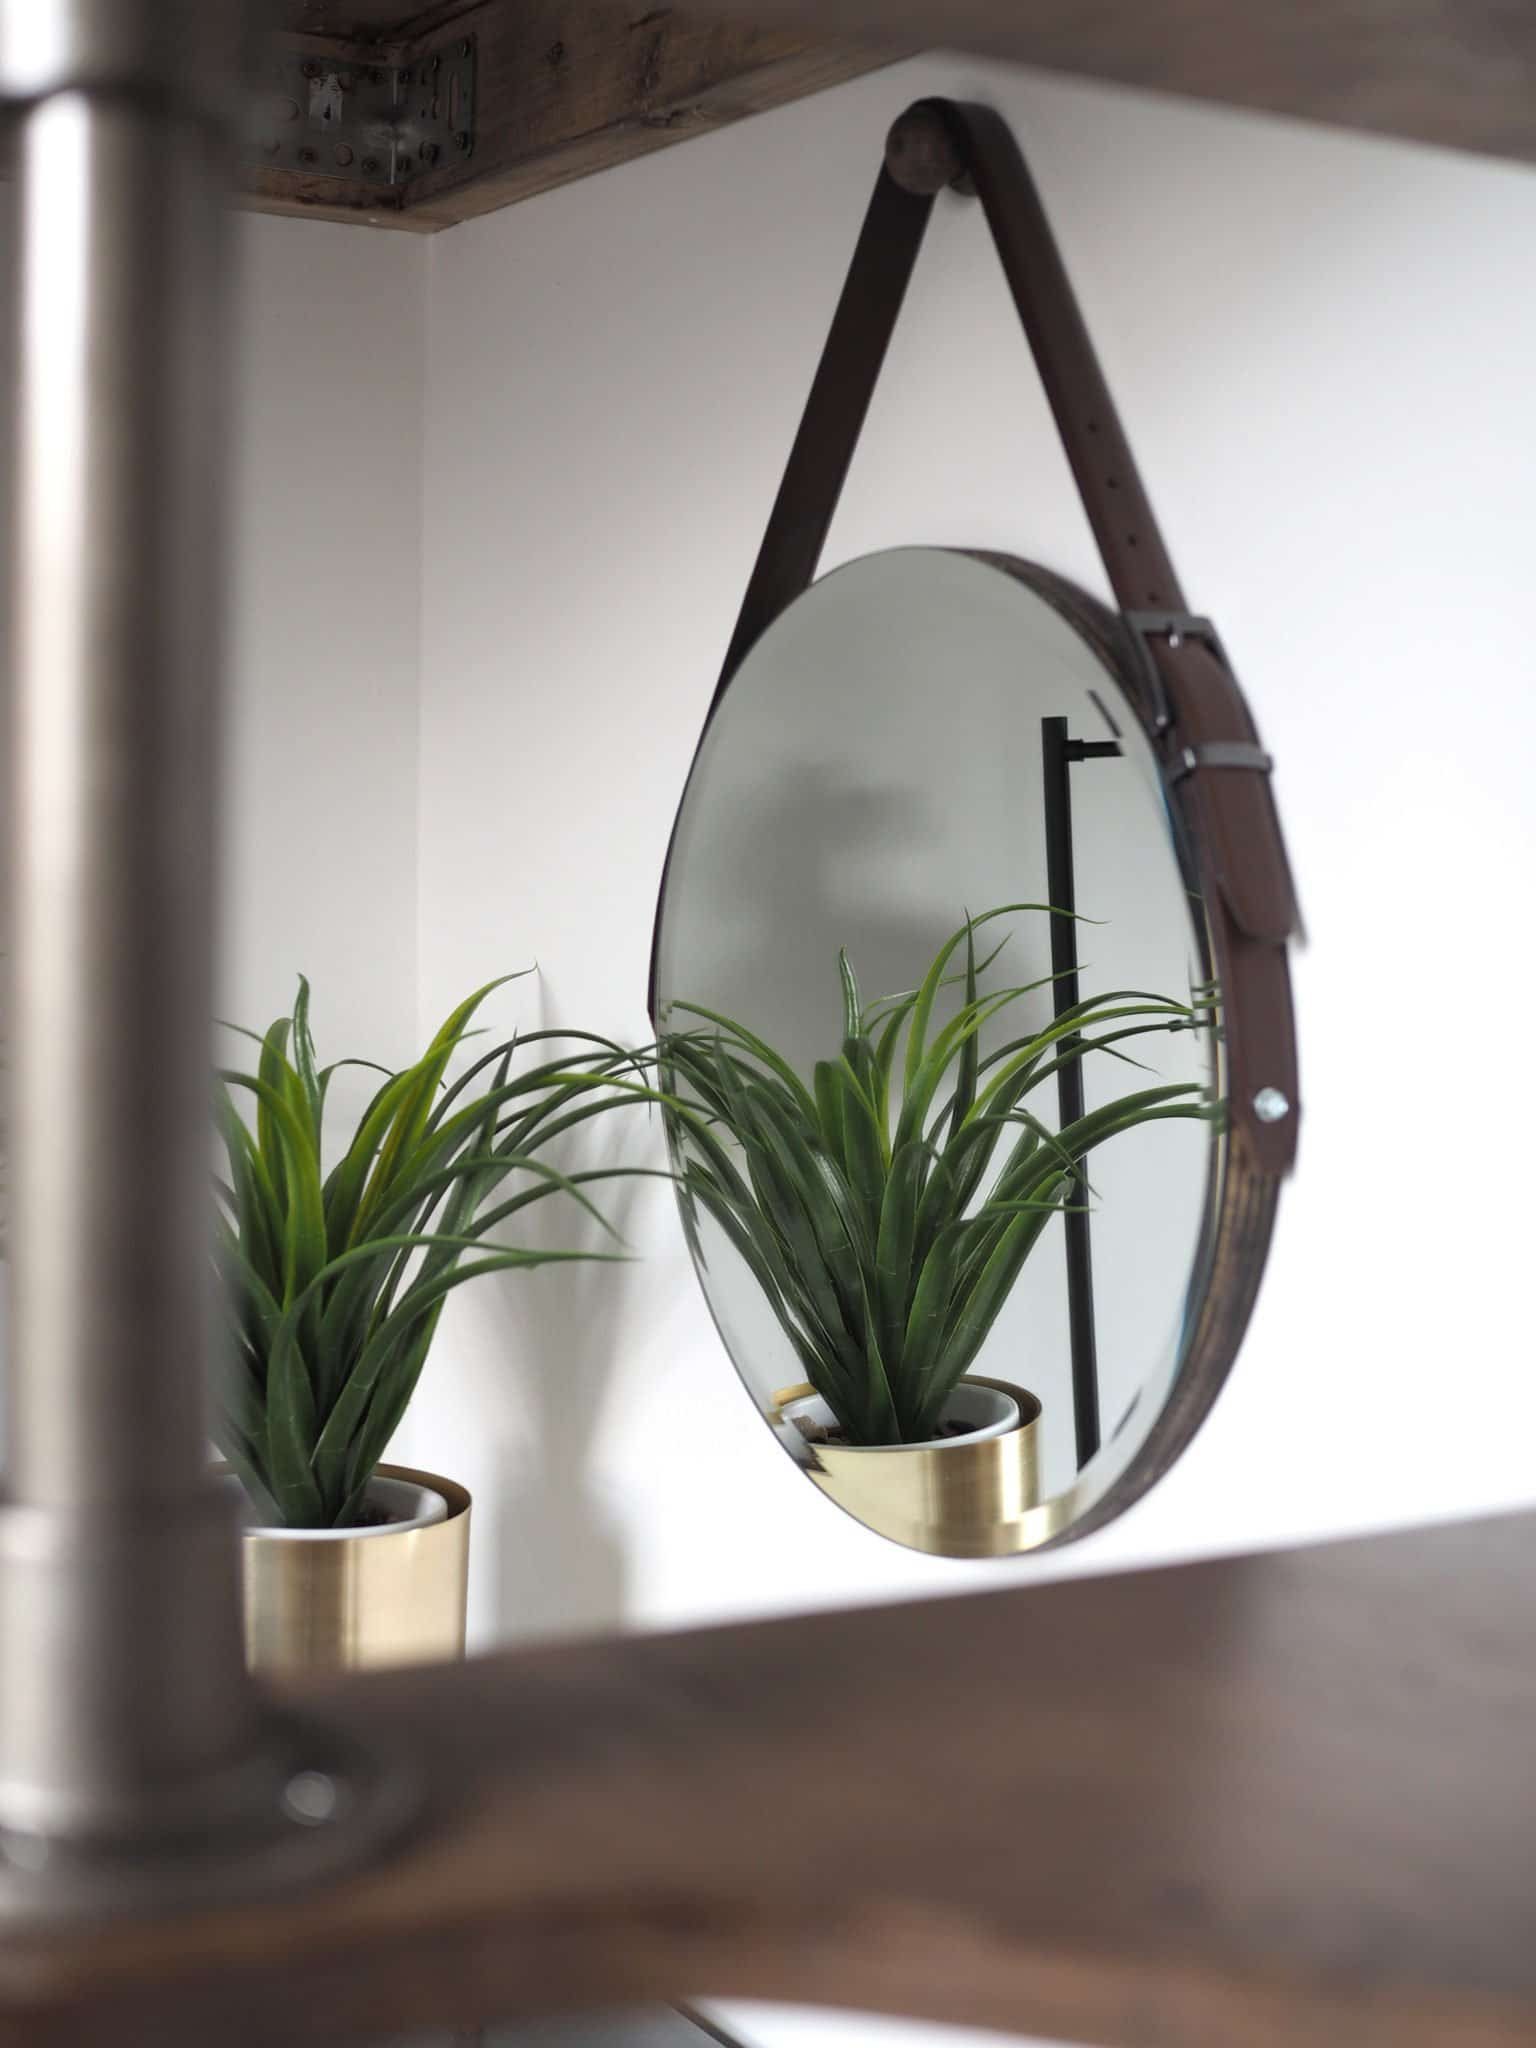 DIY ROUND MIRROR WITH STRAP AND HANGING PEG